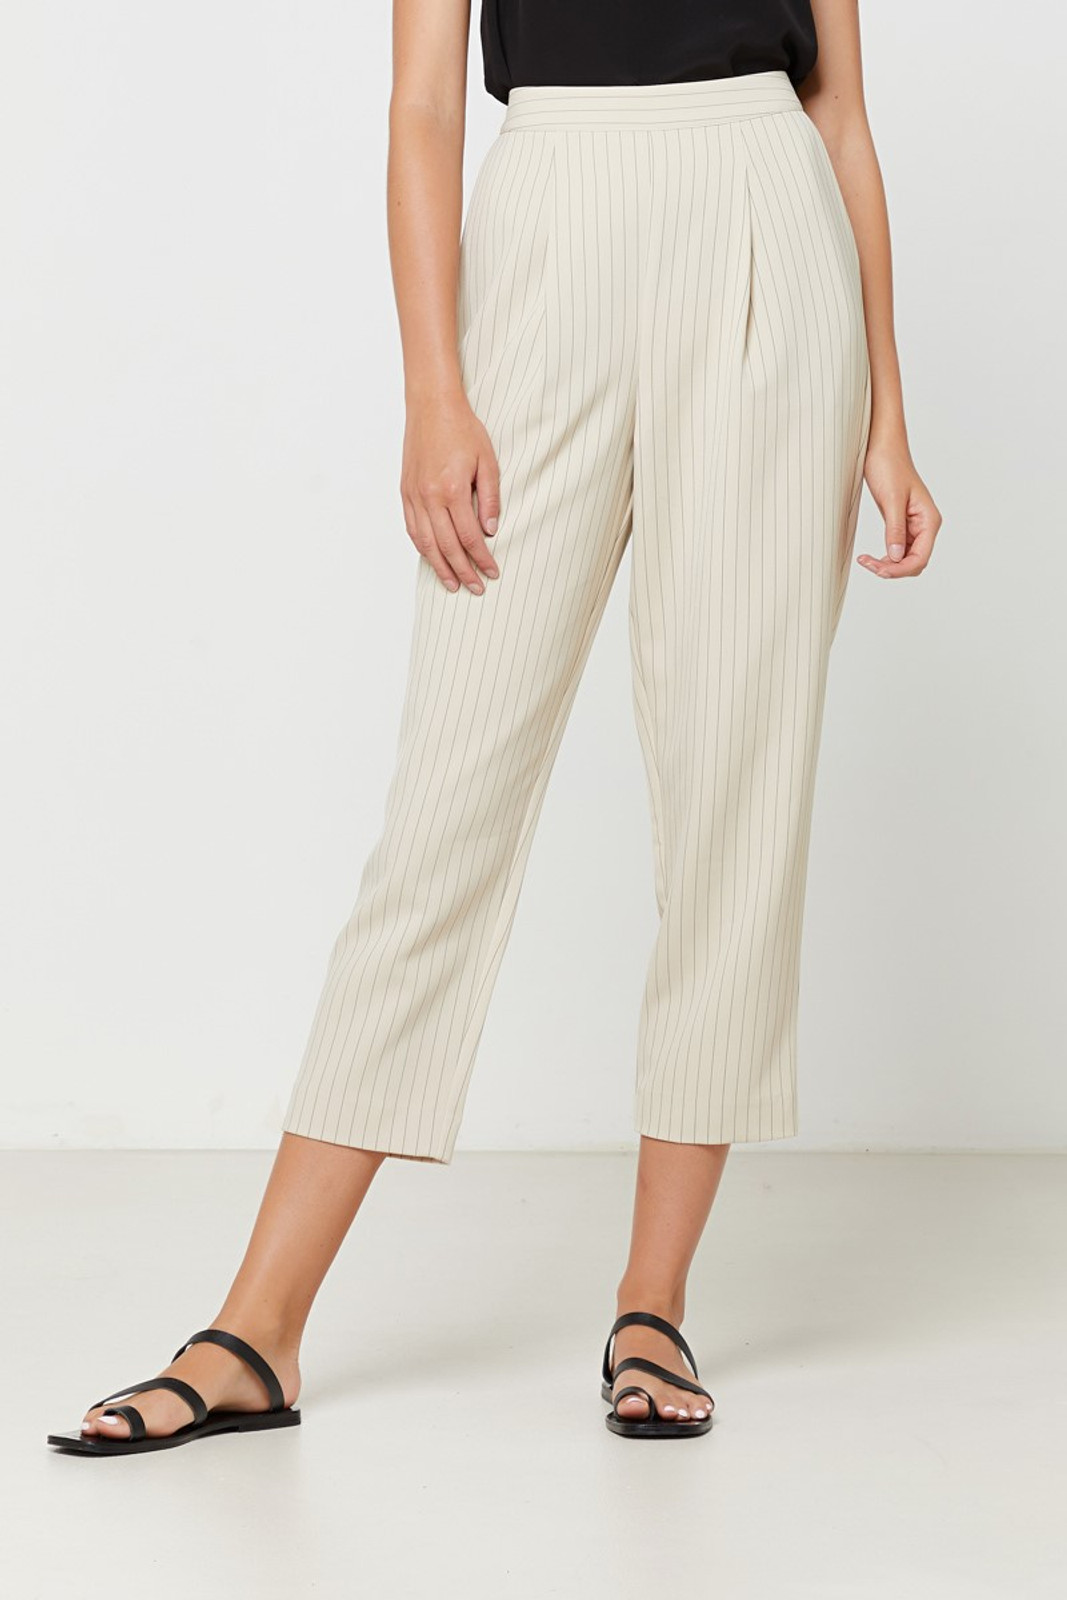 Elka Collective Everly Pant Neutrals  1